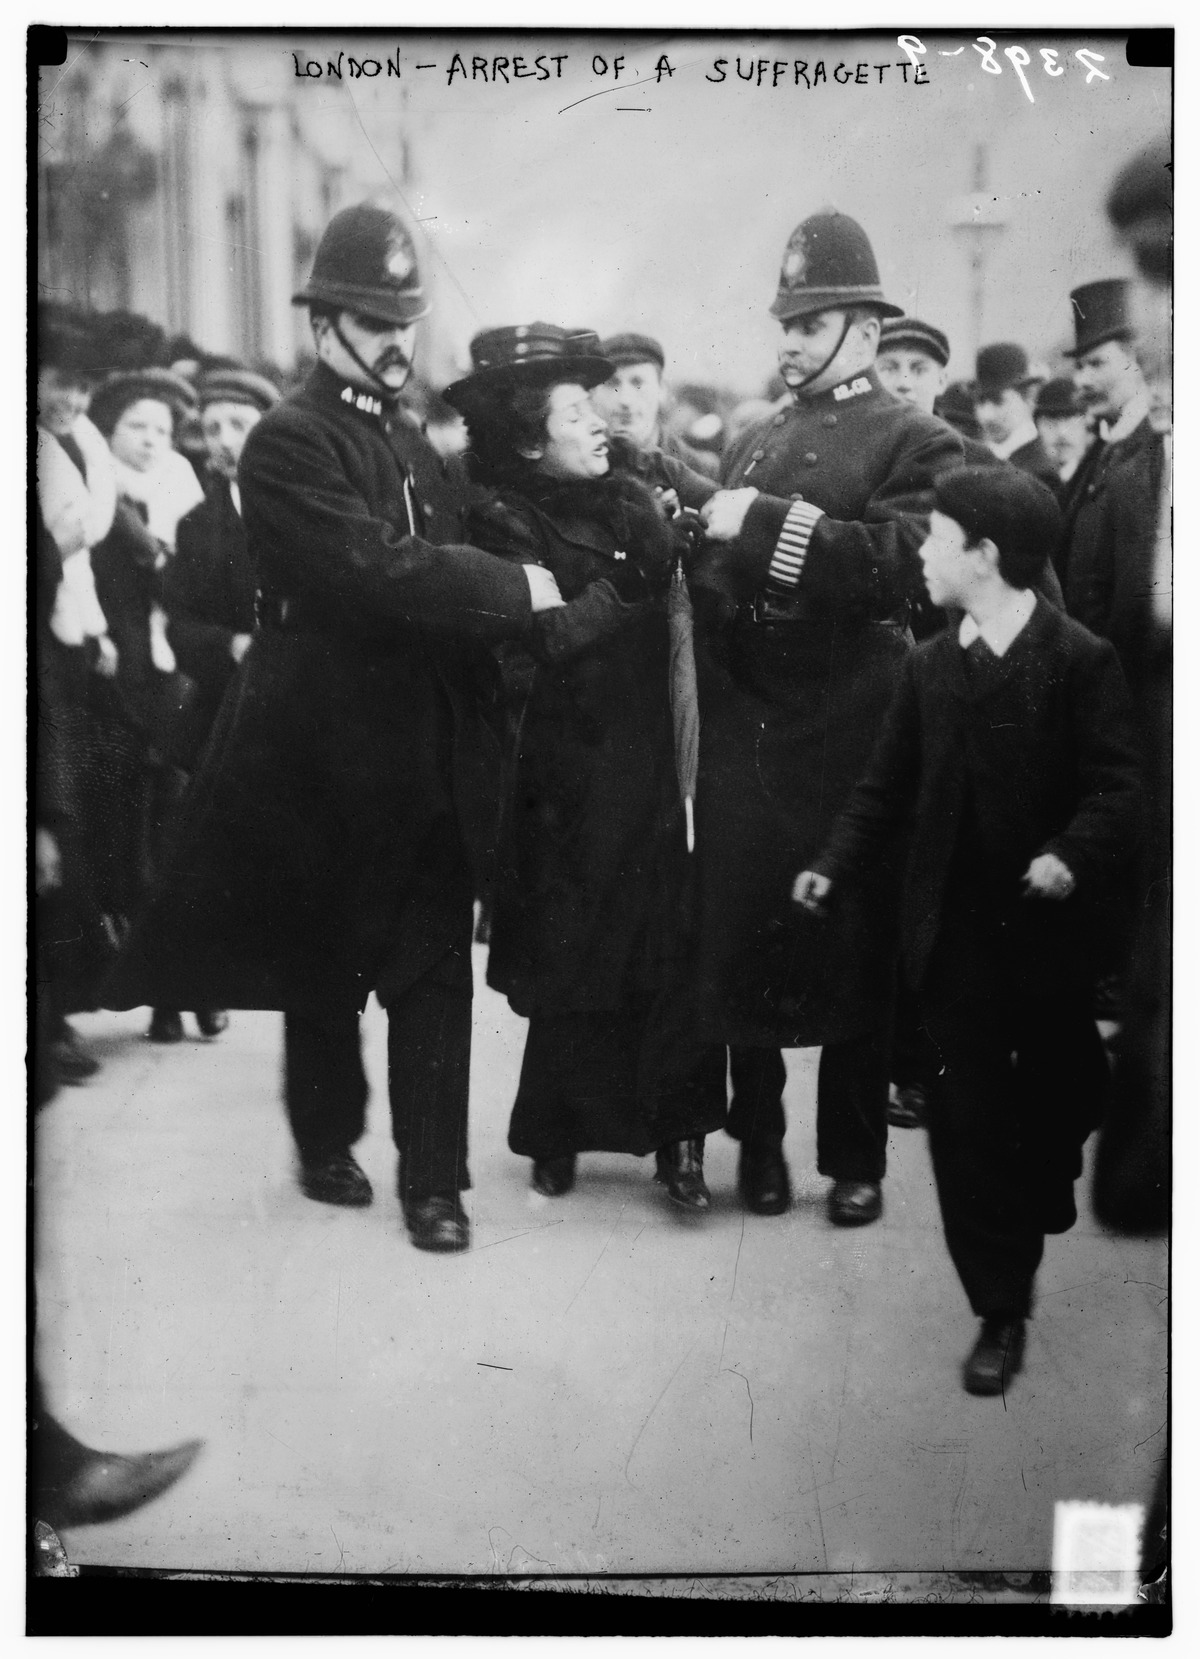 London - arrest of a suffragette.tif